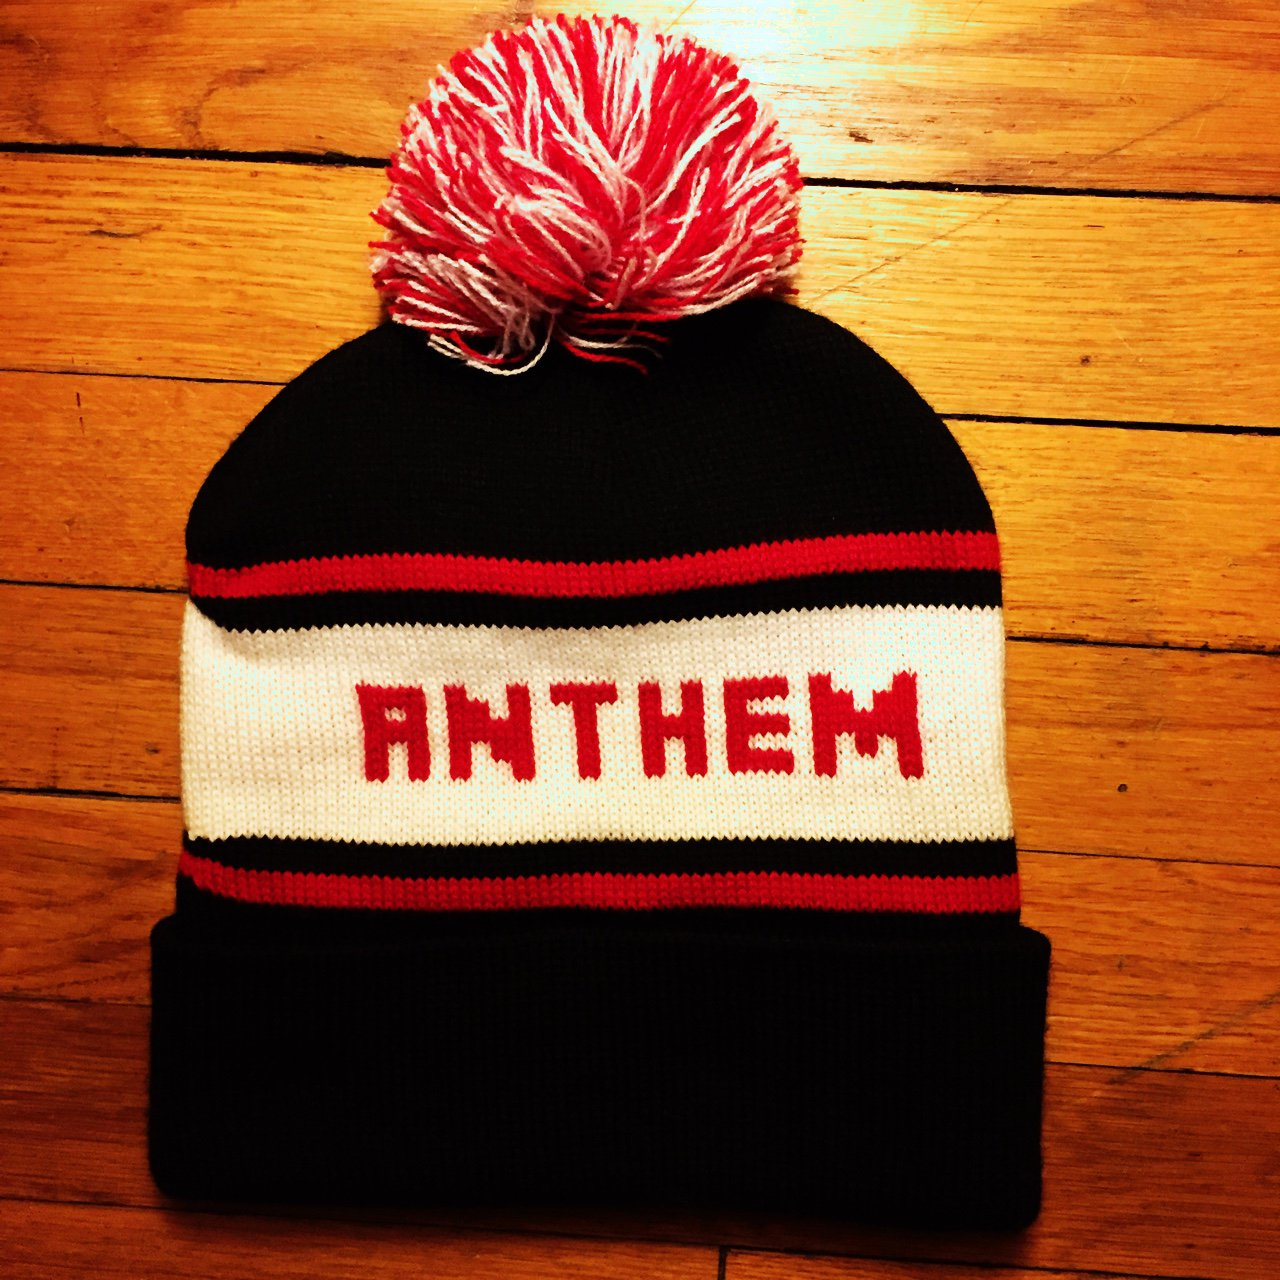 Anthem Made beanie-black red white. This line is owned by of - Depop 3231714323f1